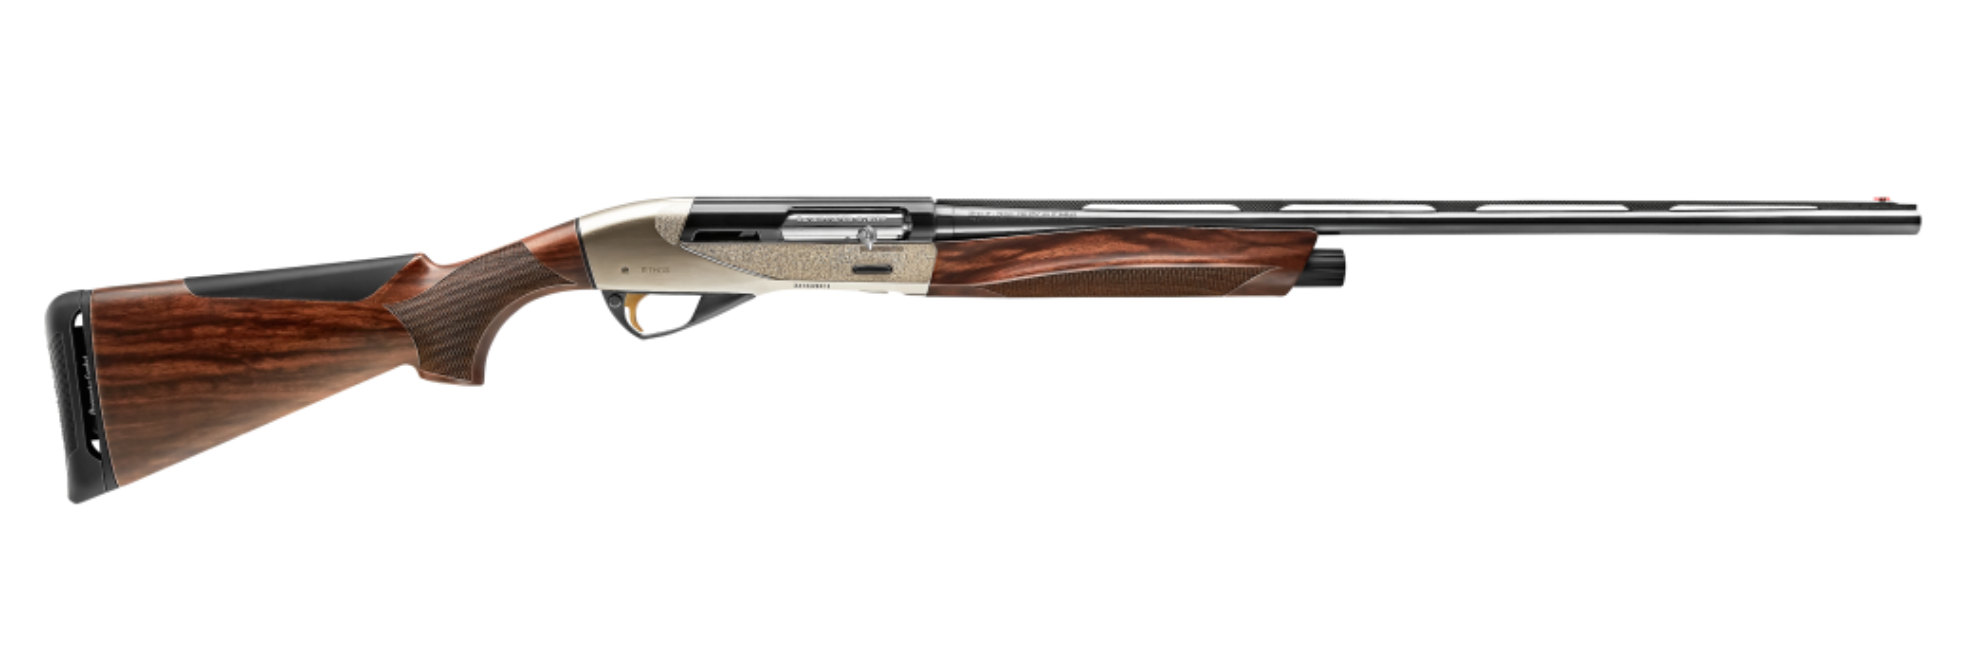 The Ethos is also offered with a nickel-plated and engraved receiver, bringing the MSRP to $2,199.